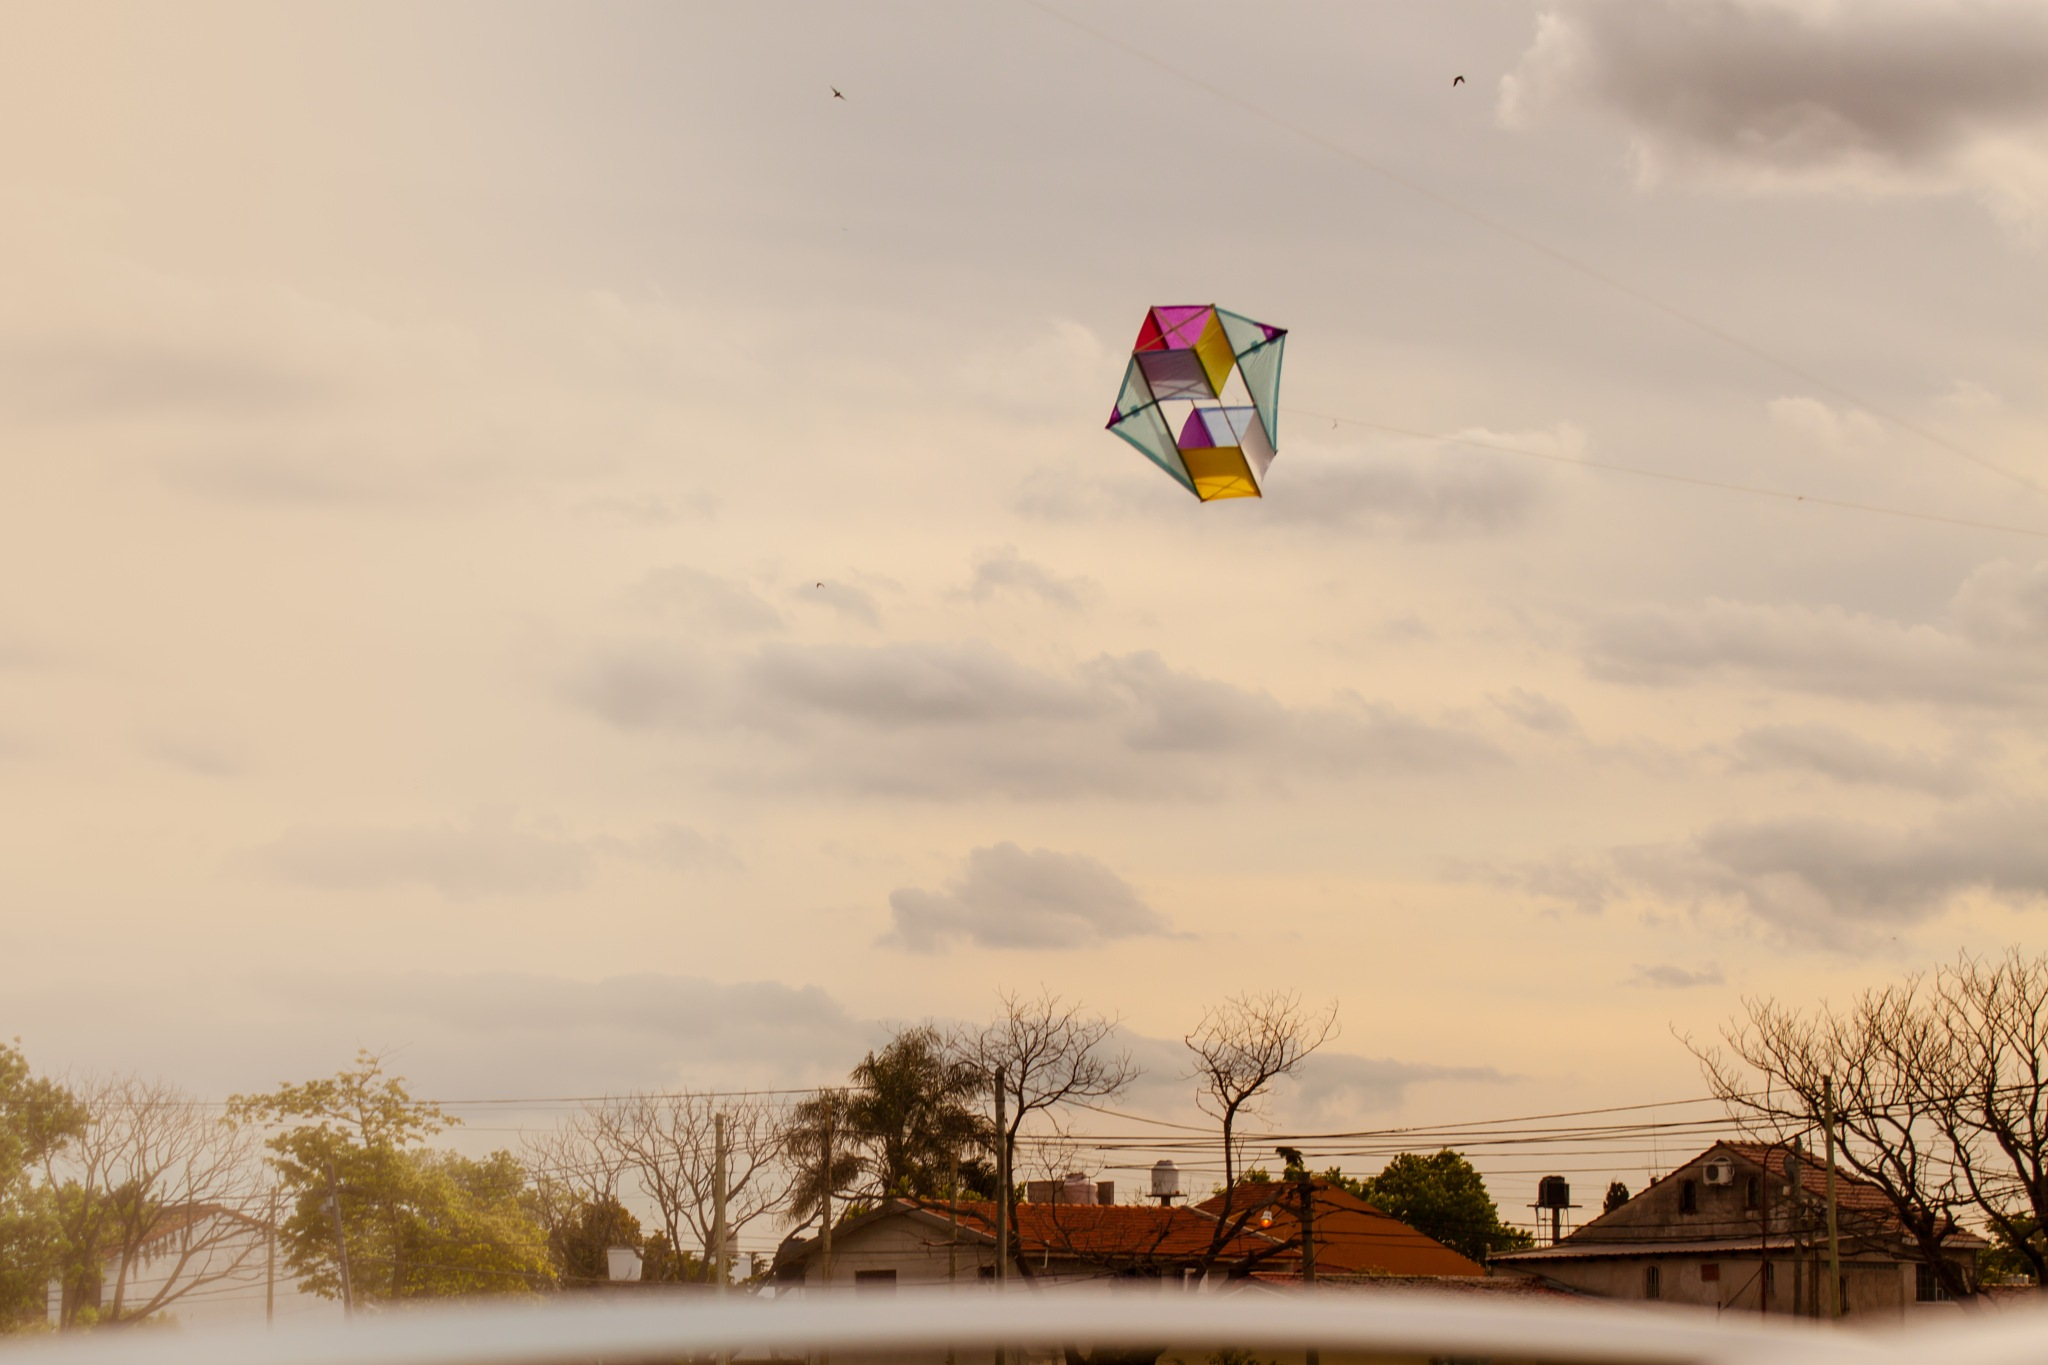 Kite in the Sky by carolina.abemiel